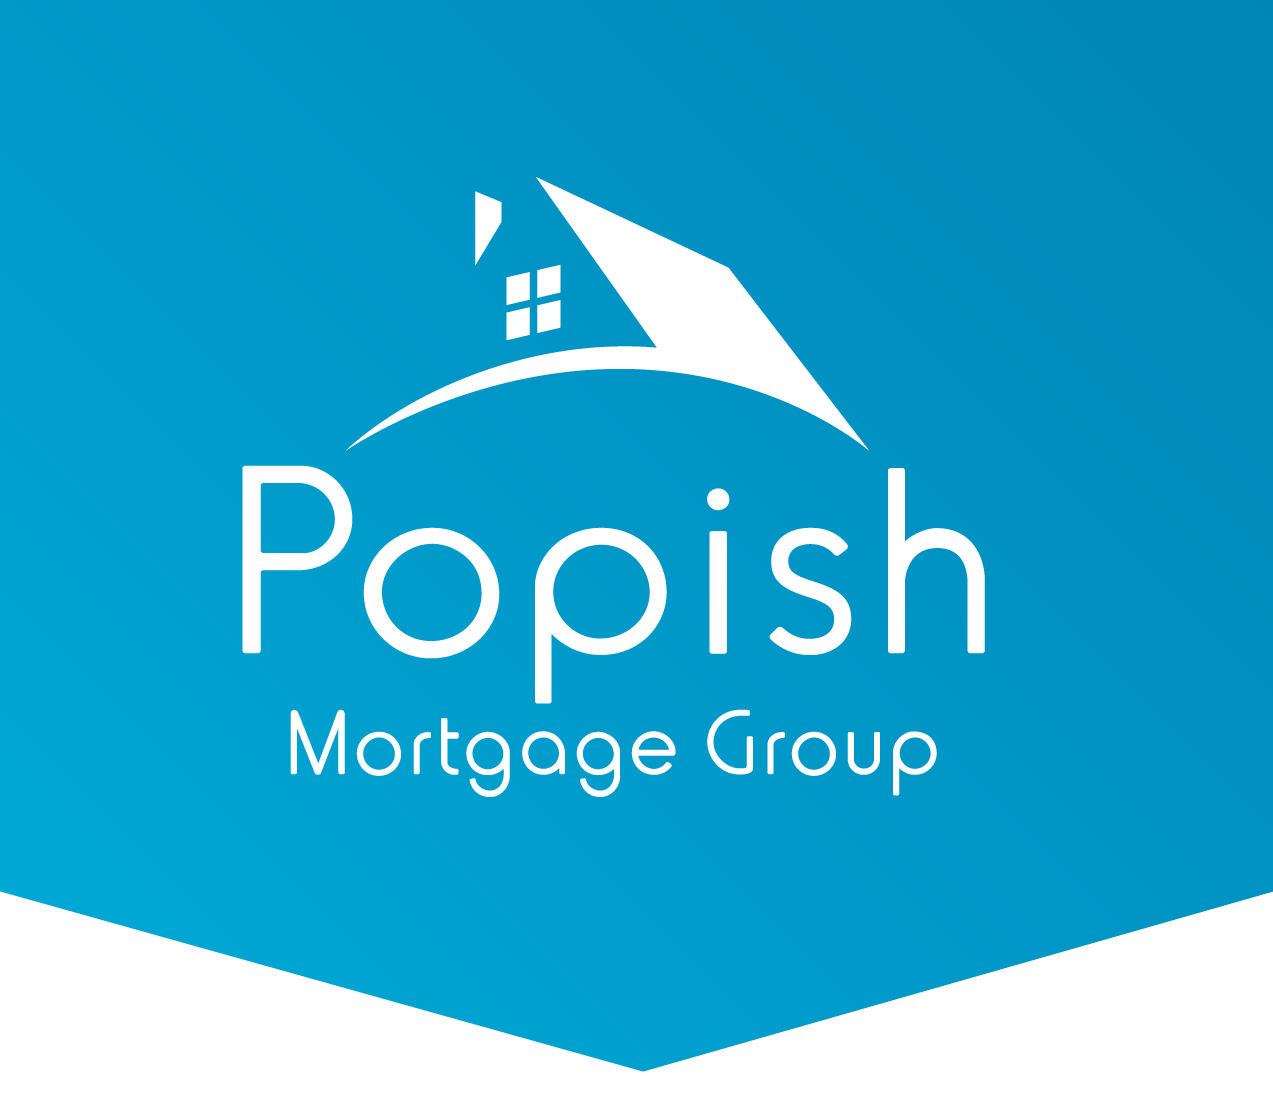 Popish Mortgage Group - A Division of Universal Lending Corporation